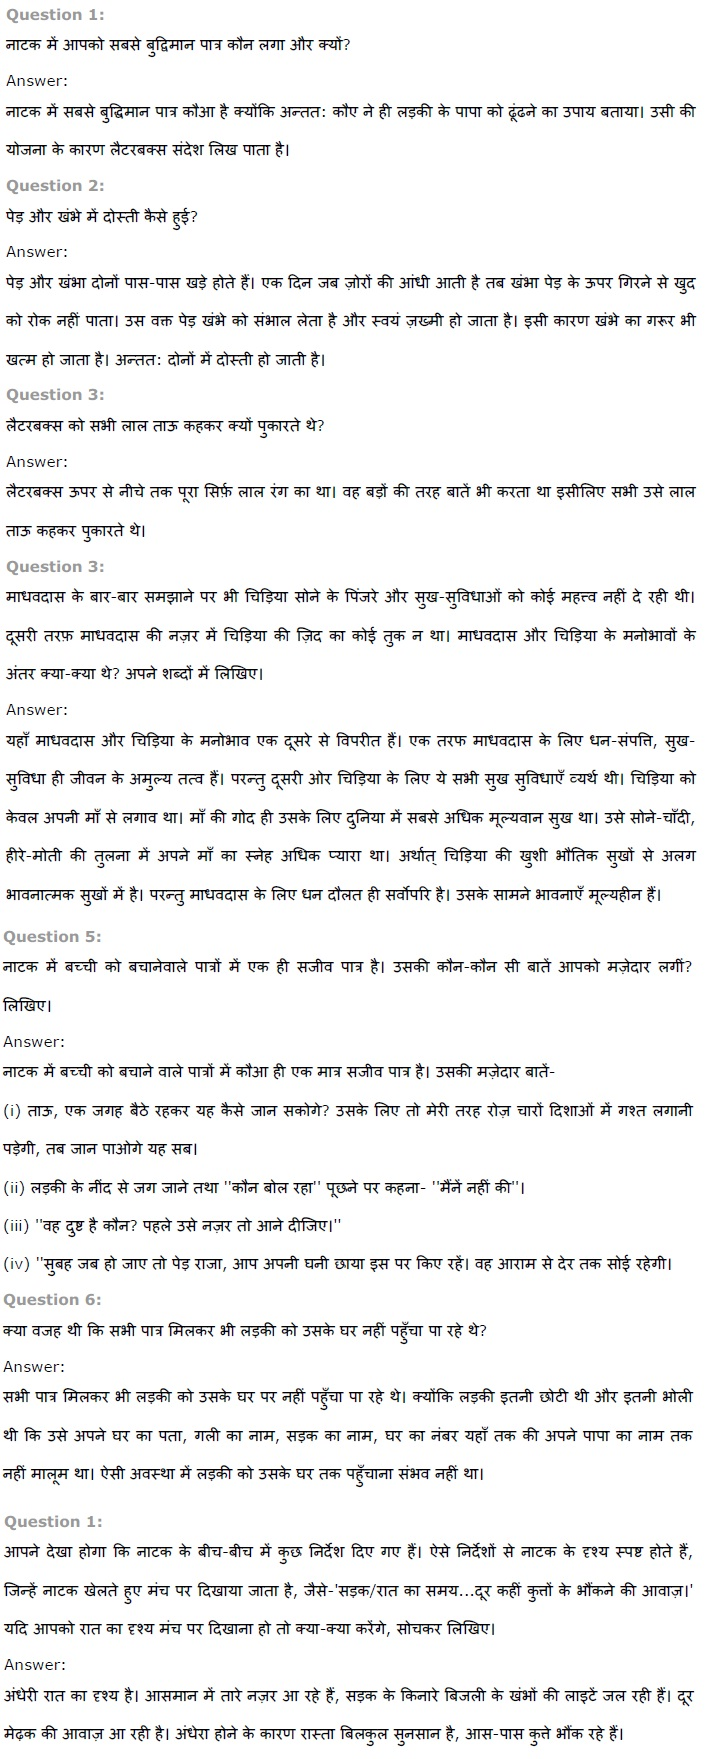 NCERT Solutions for Class 7th Hindi Chapter 7 पापा खो गए Image by AglaSem